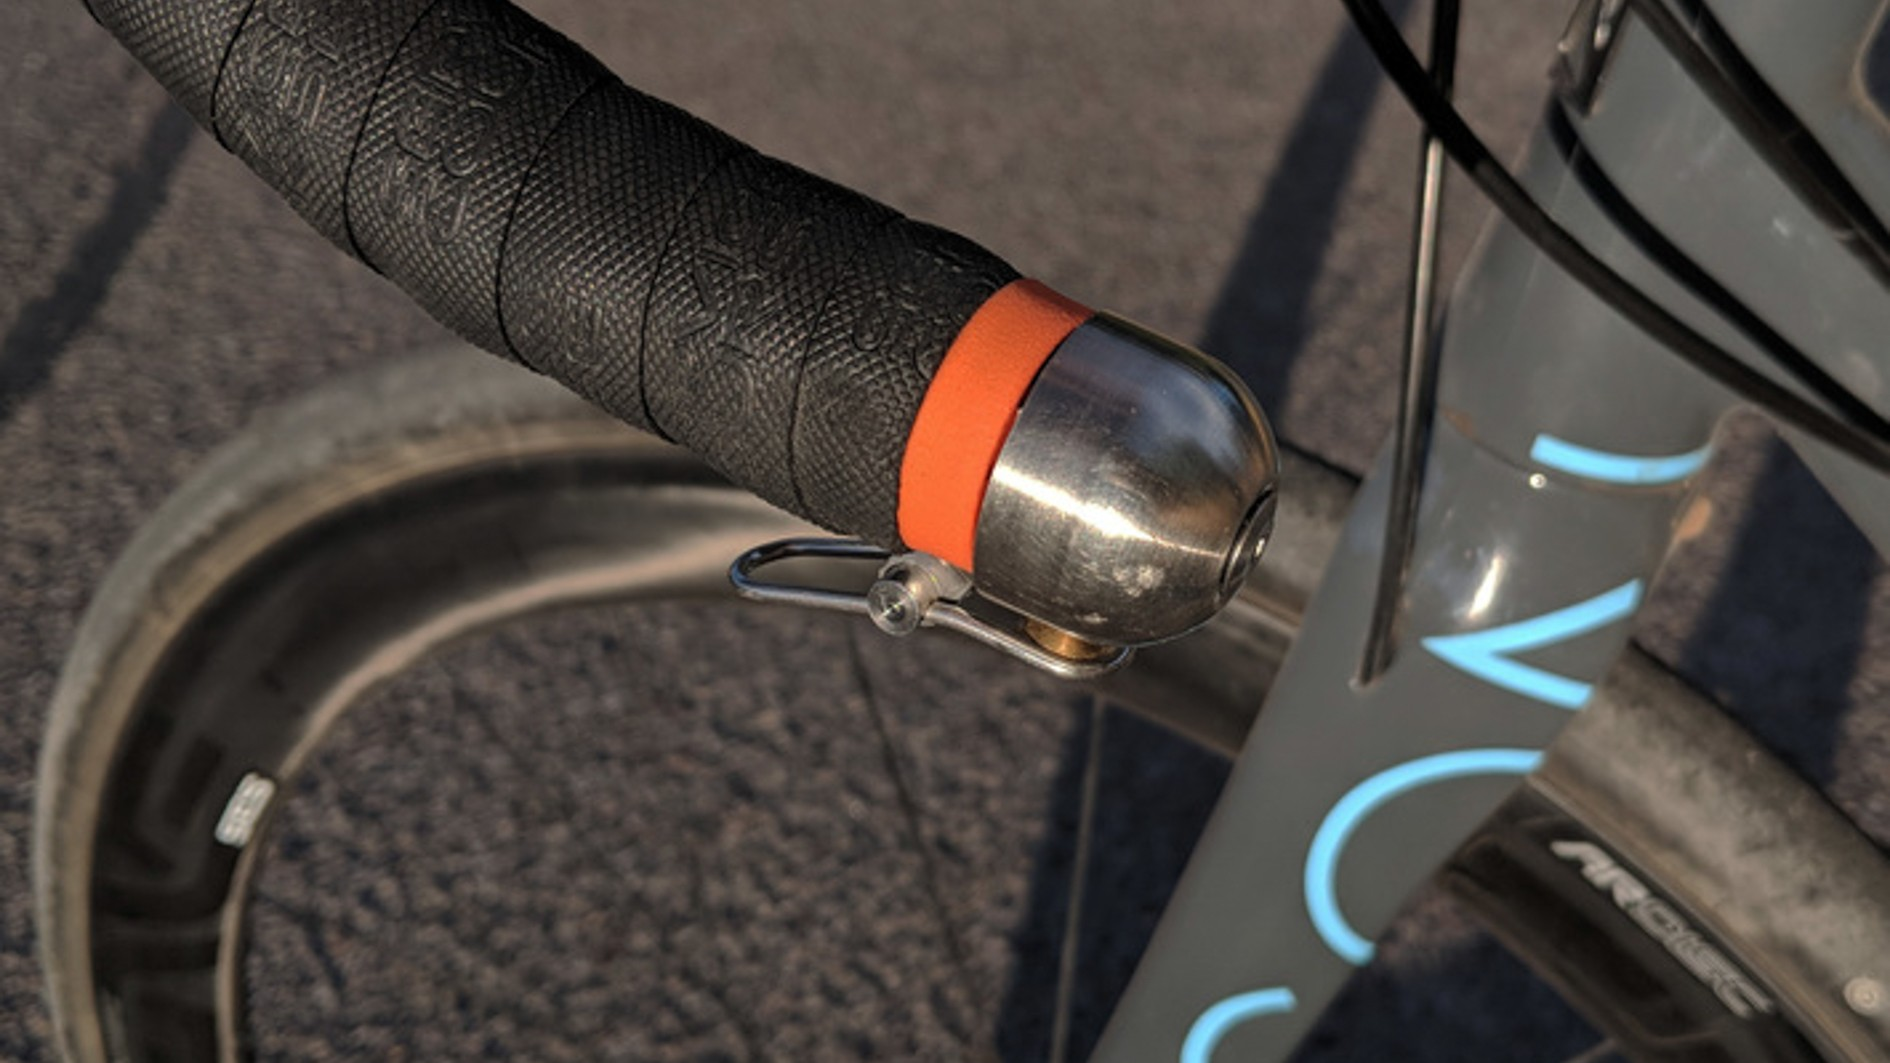 Looking to mount your Spurcycle bell discreetly? This could be a great option